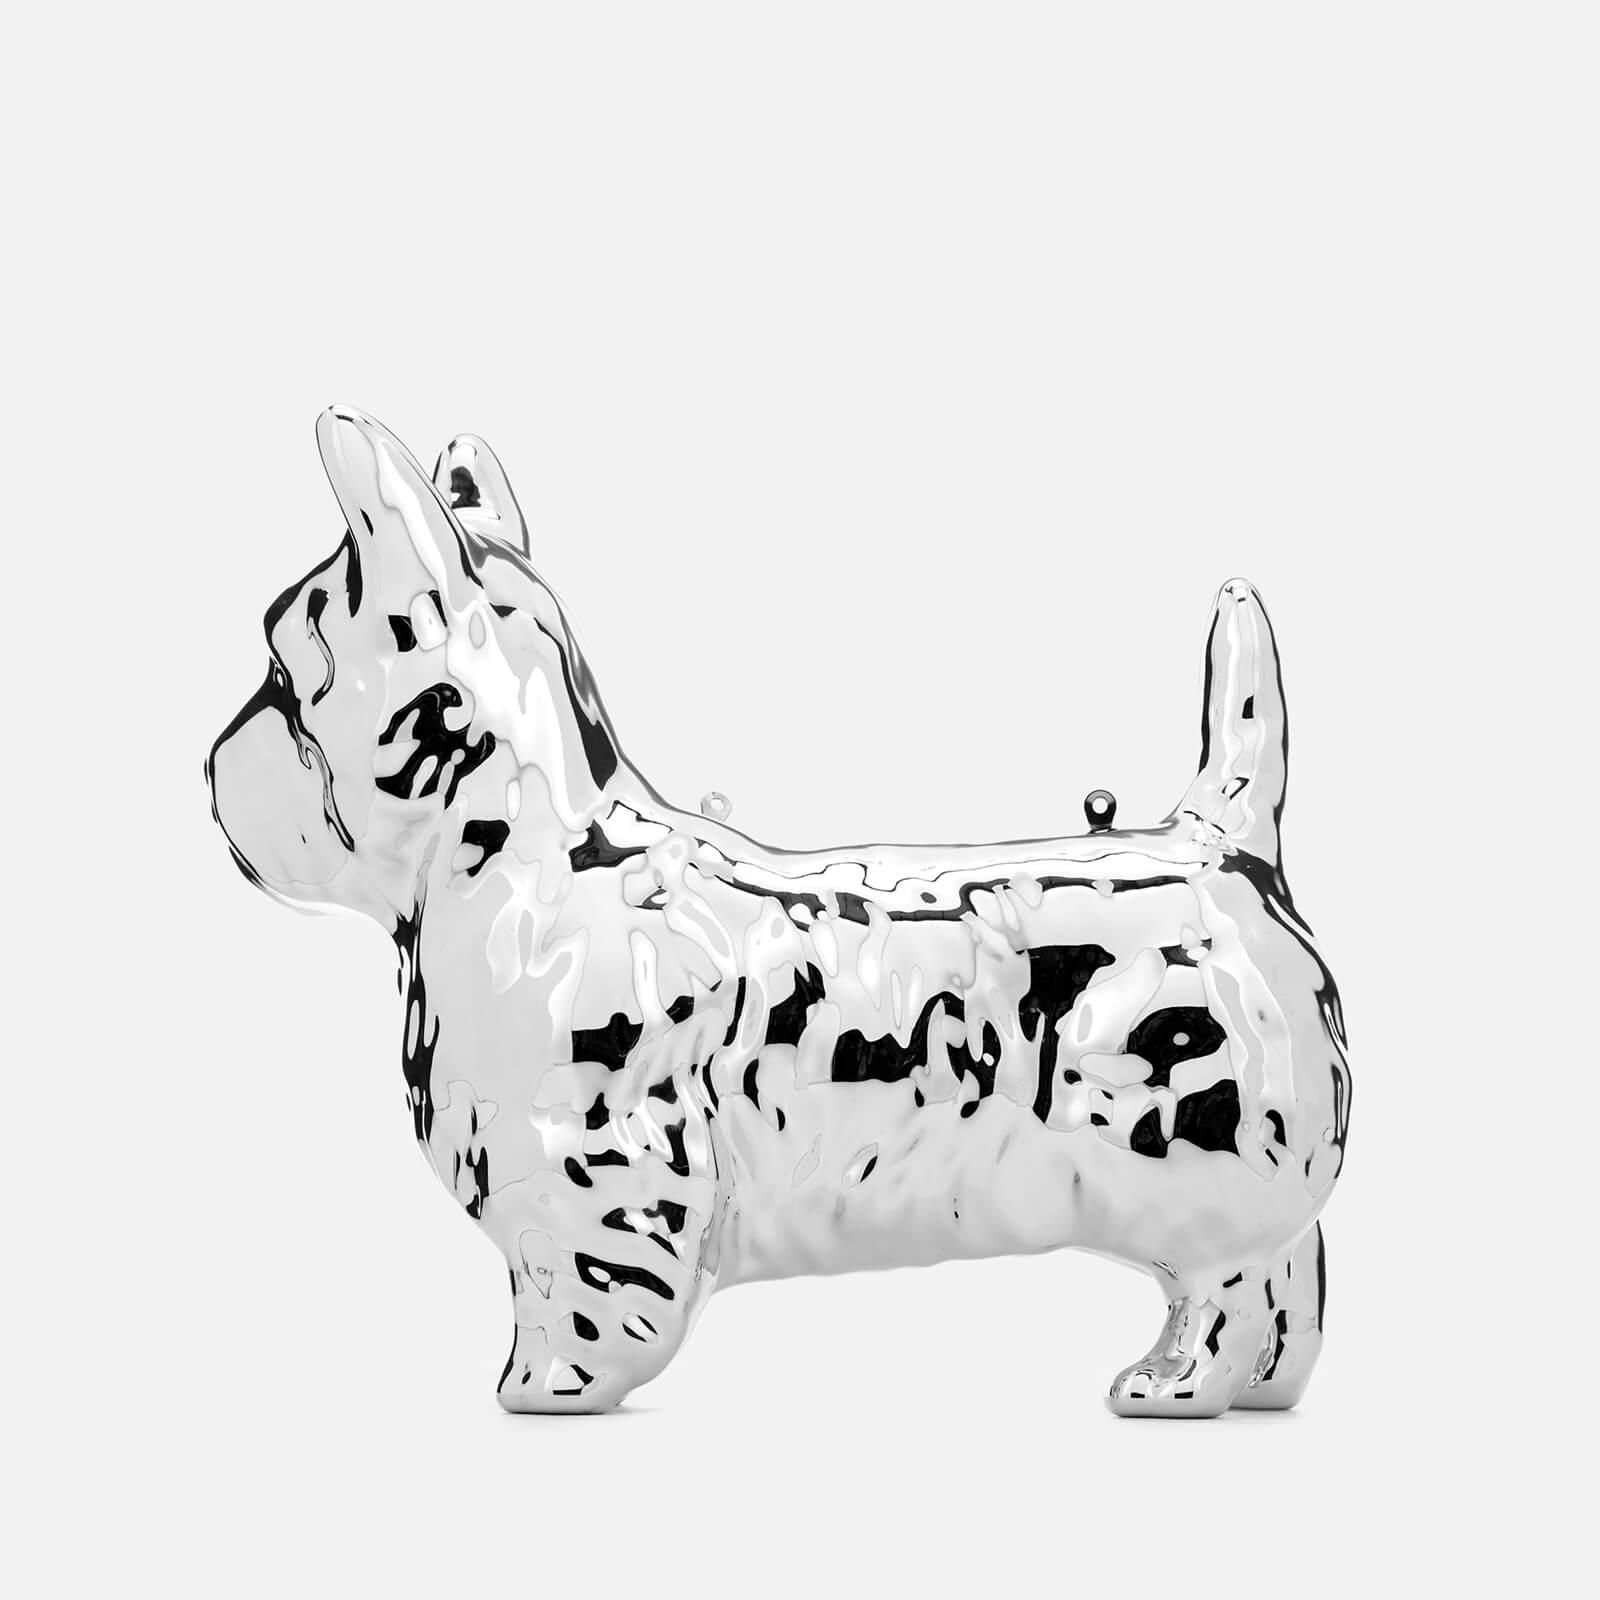 Lulu Guinness Womens Daphne Dog Clutch Cost For Sale Cheap And Nice Free Shipping Best Seller Iw0zYun